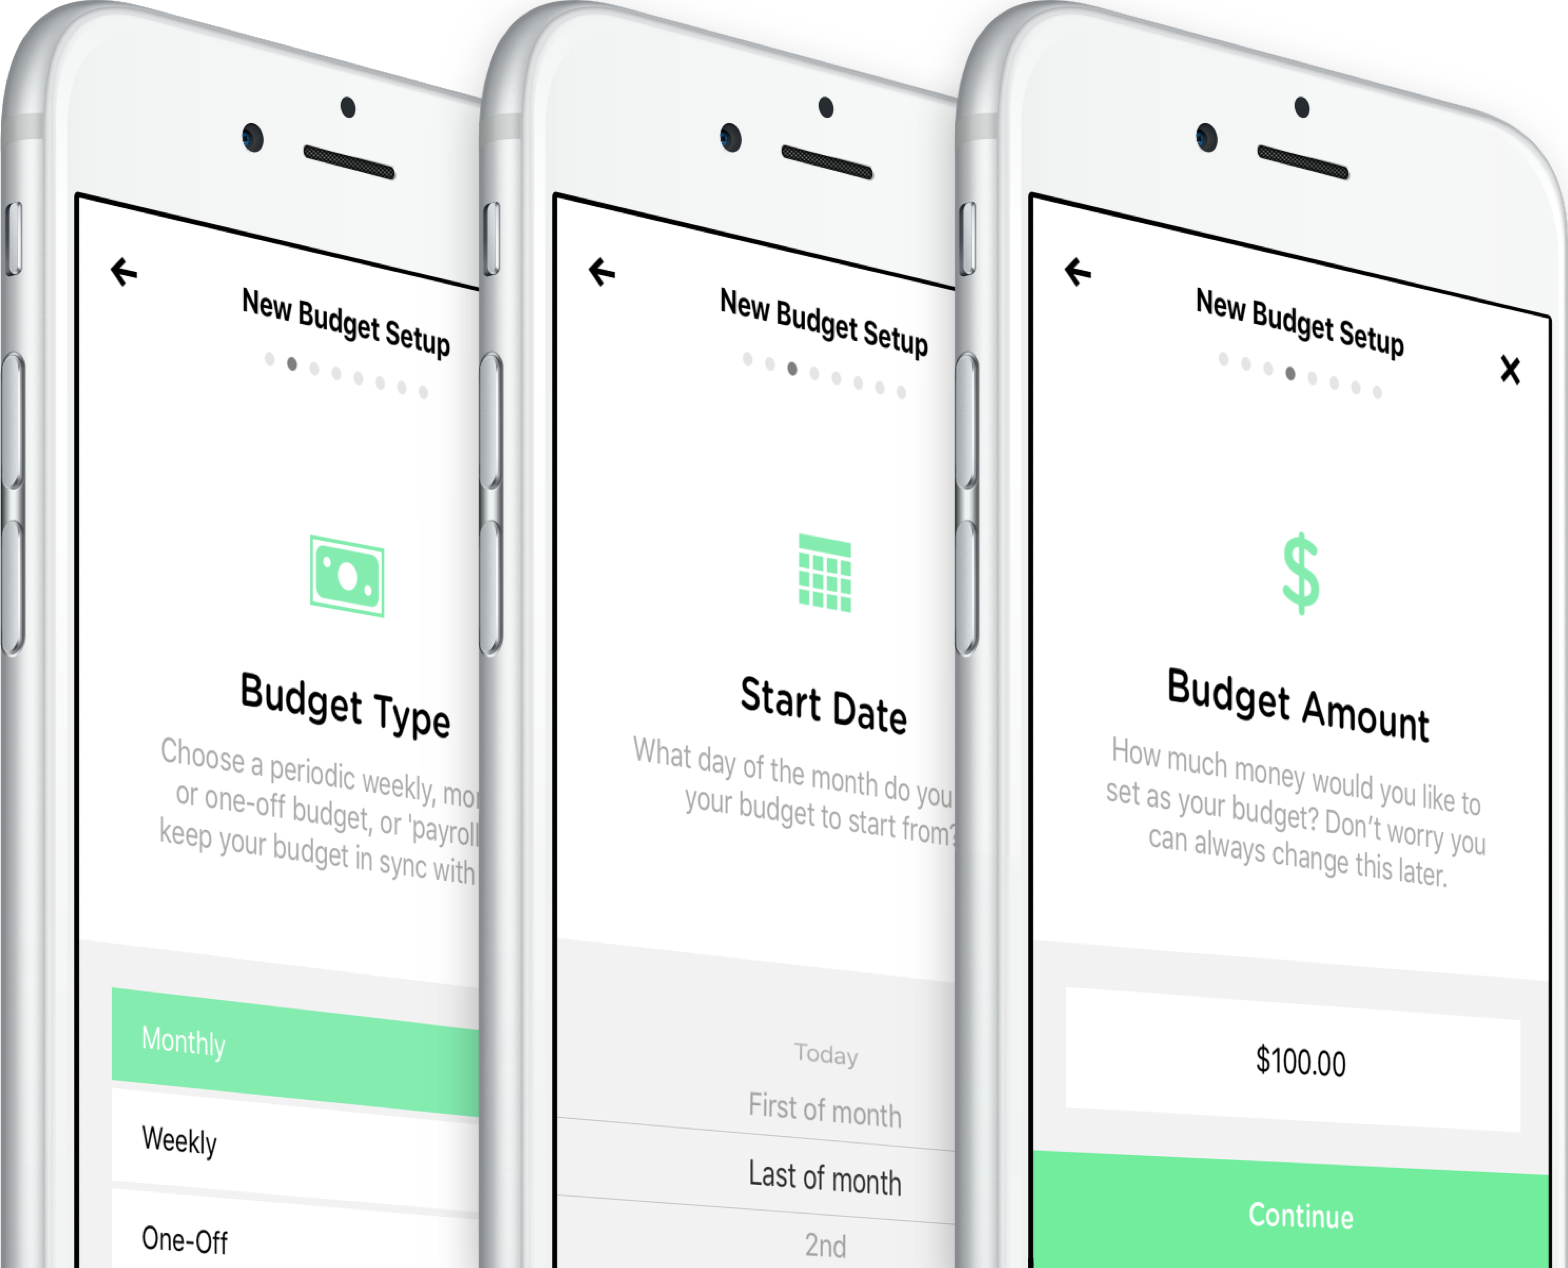 The Pennies iPhone app is simple to use and setup